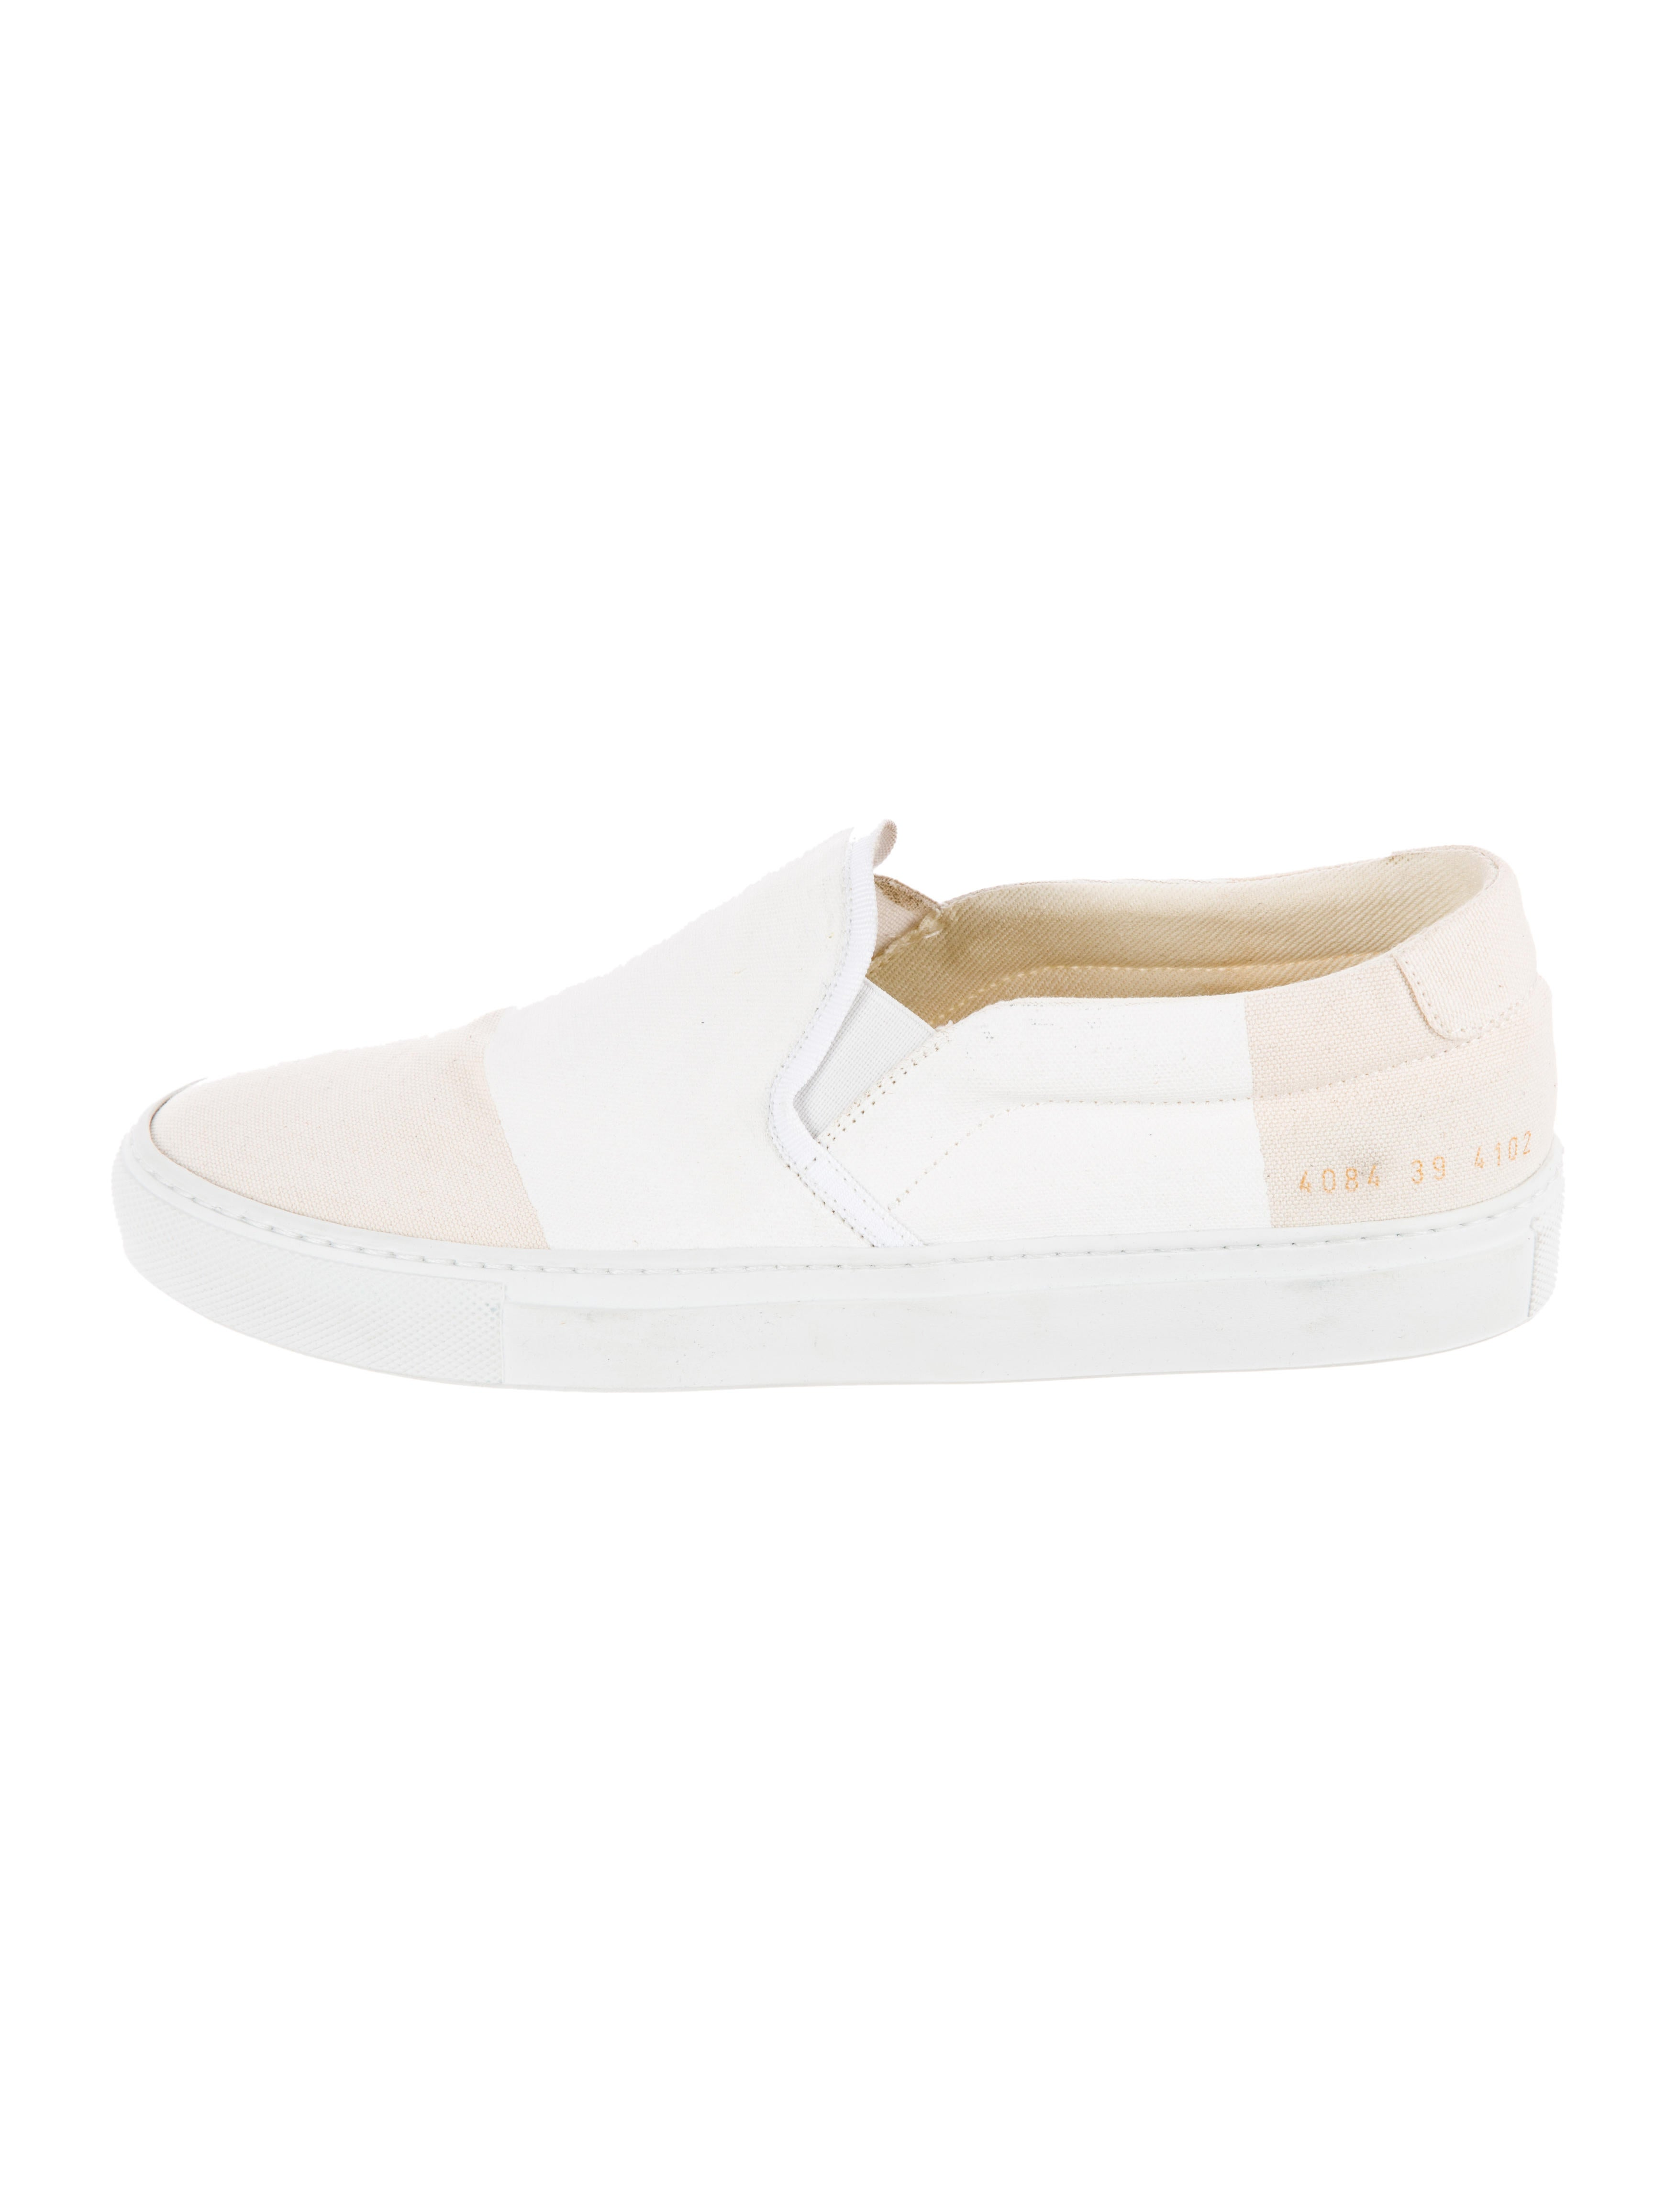 fe899908b546 Common Projects X 6397 Slip-On Sneakers - Shoes - W1C20043